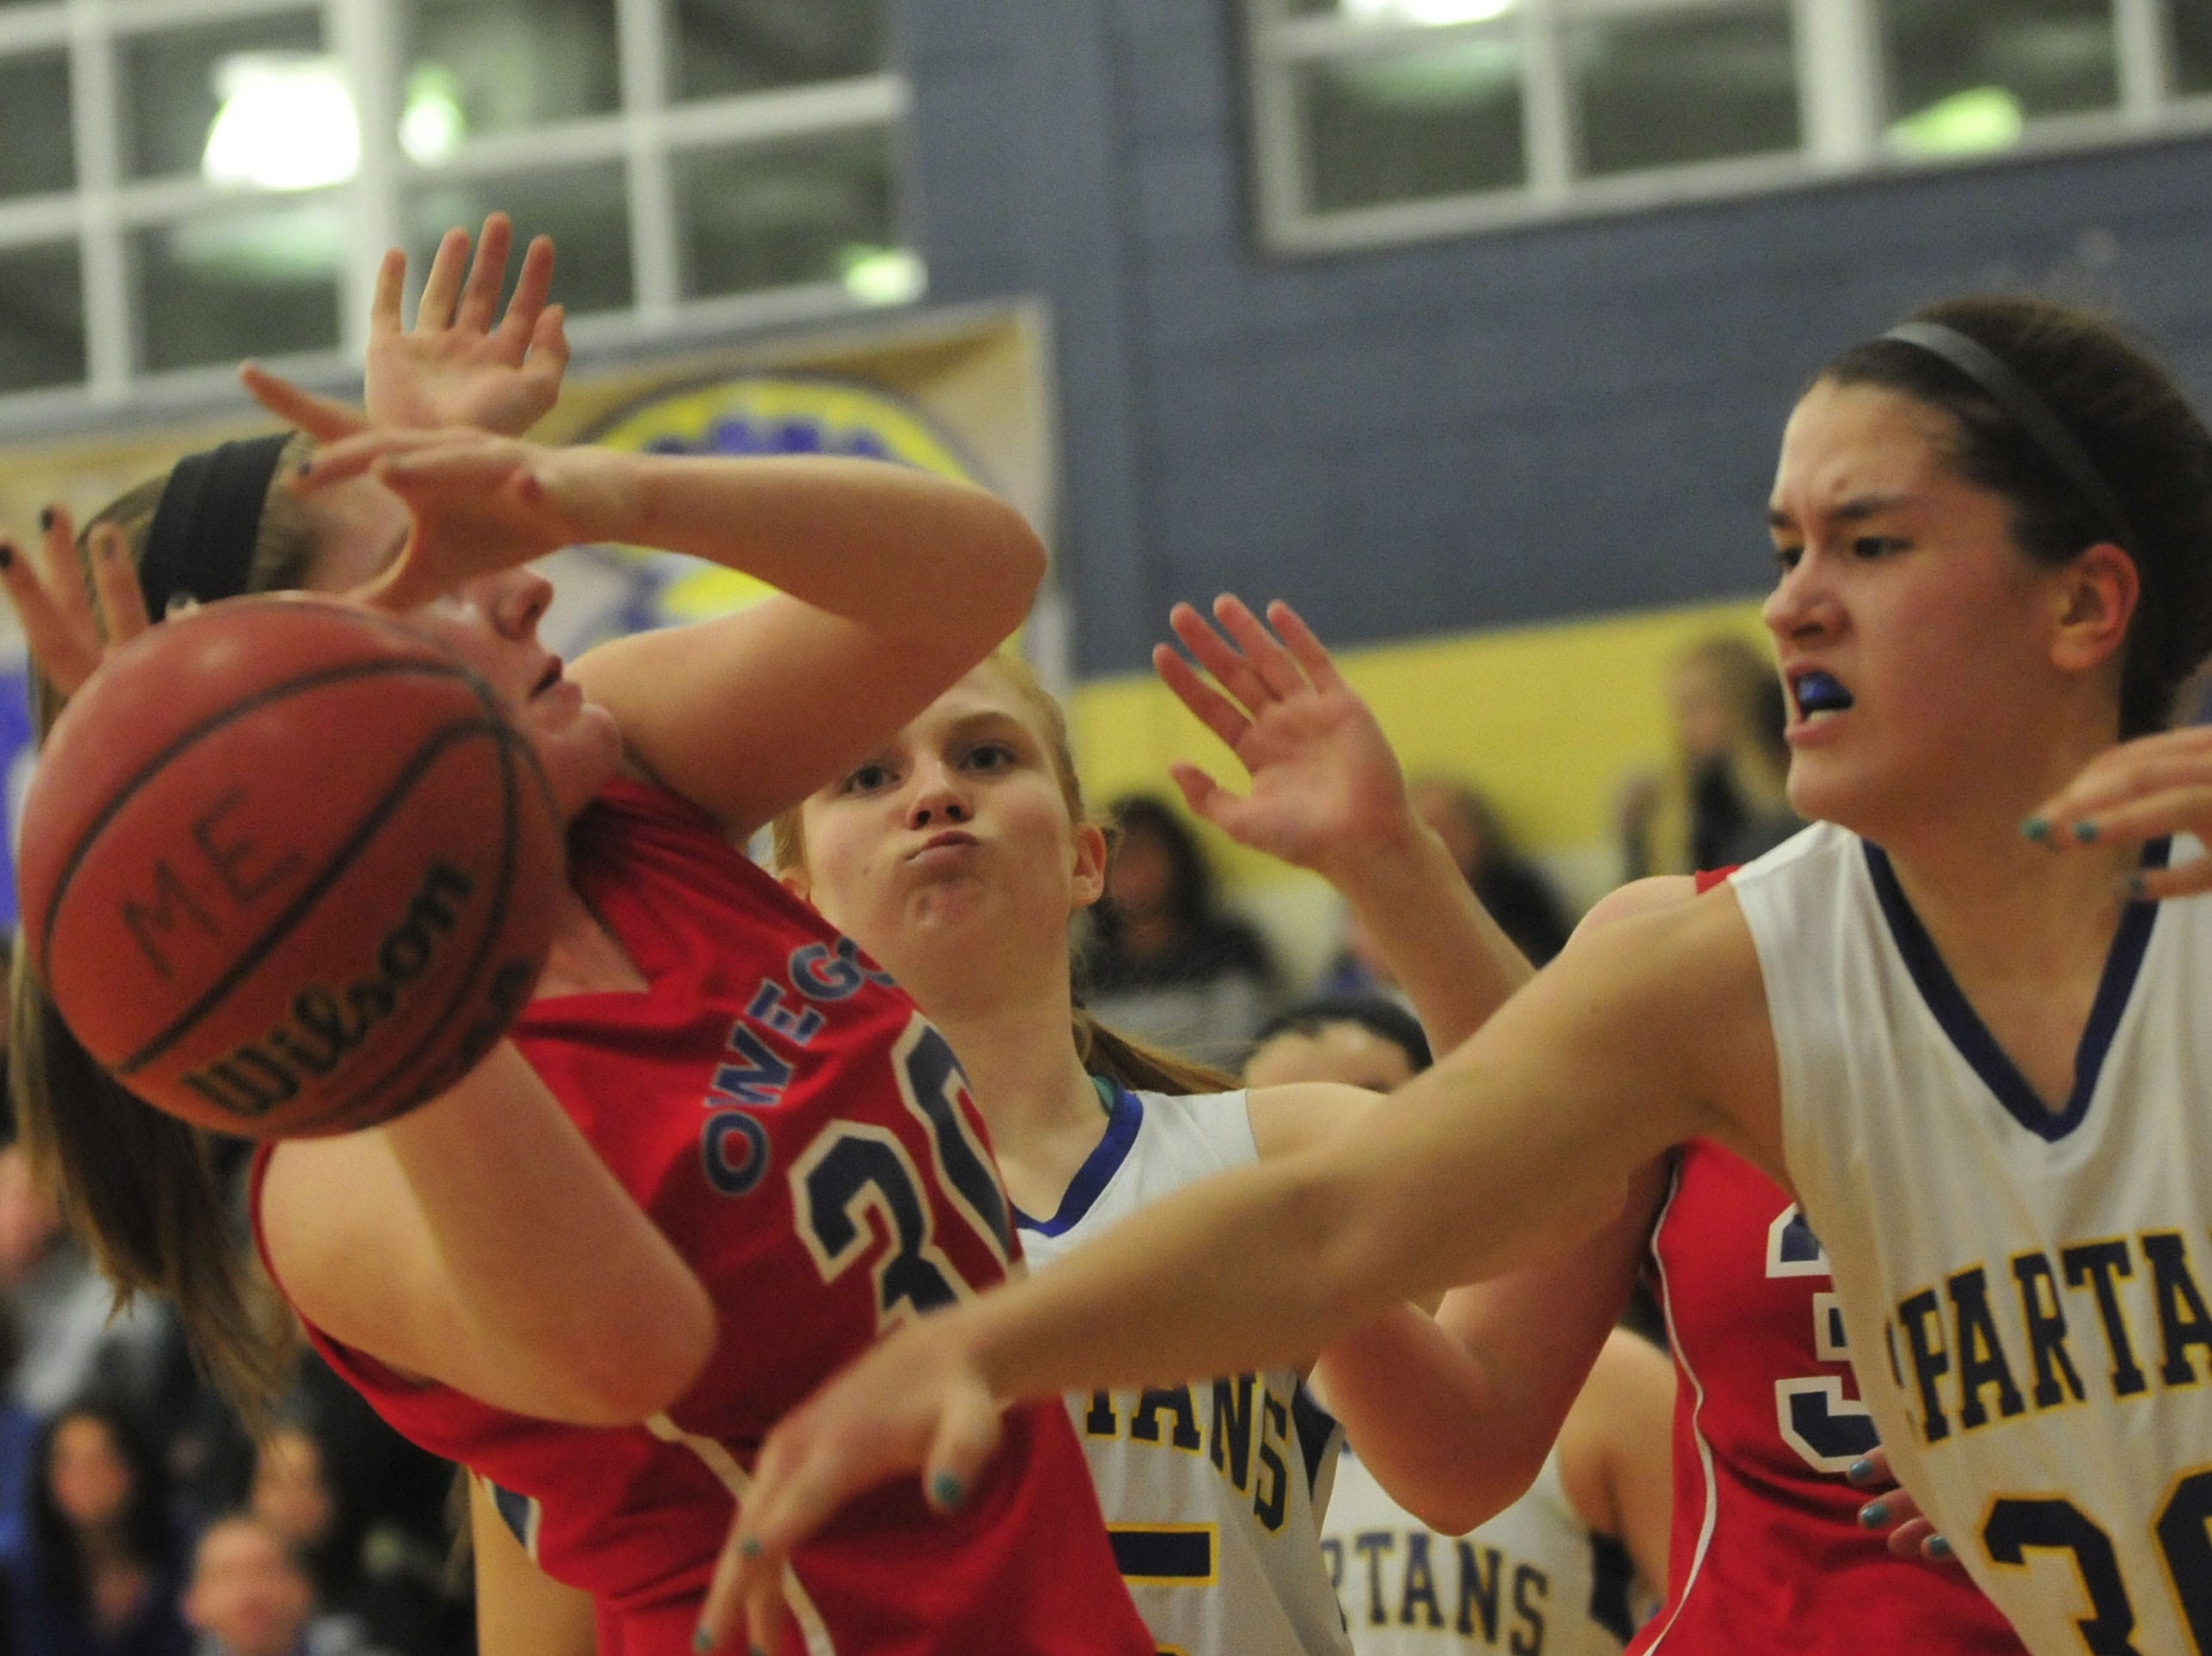 2014: Maine-Endwell's Julie Yacovoni smacks the ball out of the hands of Owego's Emily Merrill during the STAC semifinal on Wednesday. Yacovoni scored 13 points.